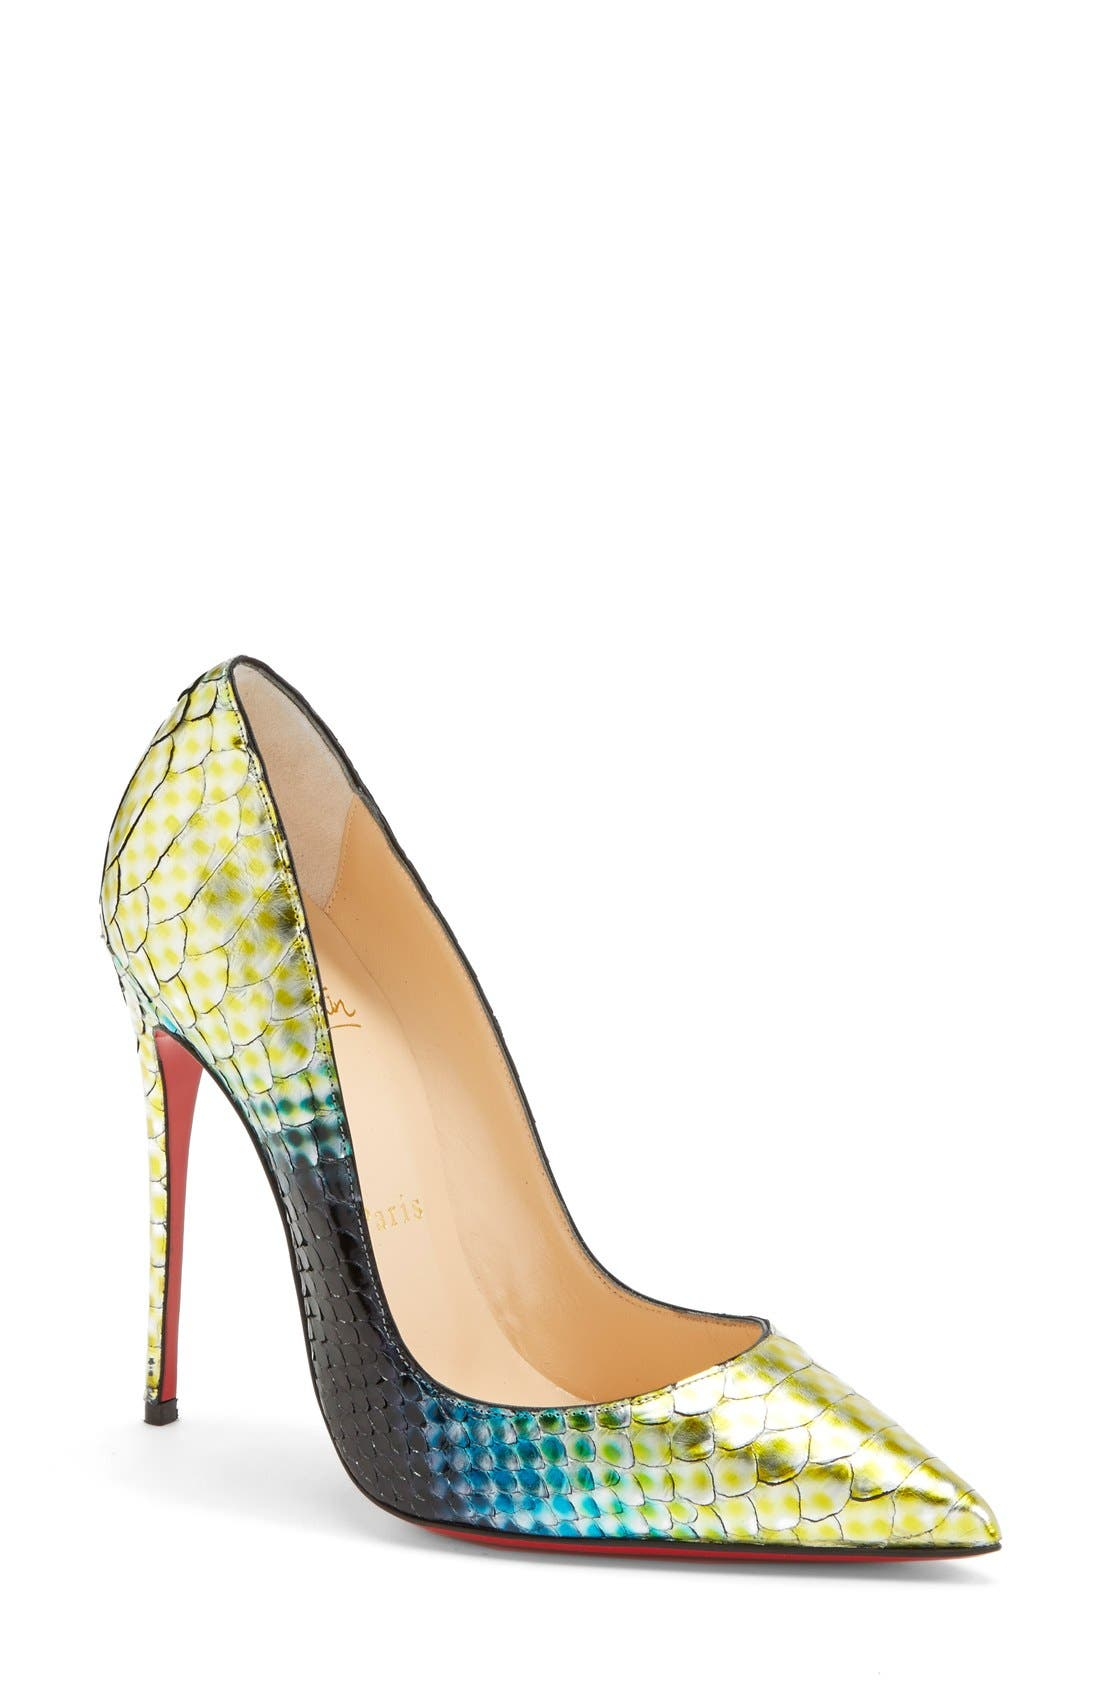 Main Image - Christian Louboutin 'So Kate' Painted Genuine Python Pointy Toe Pump